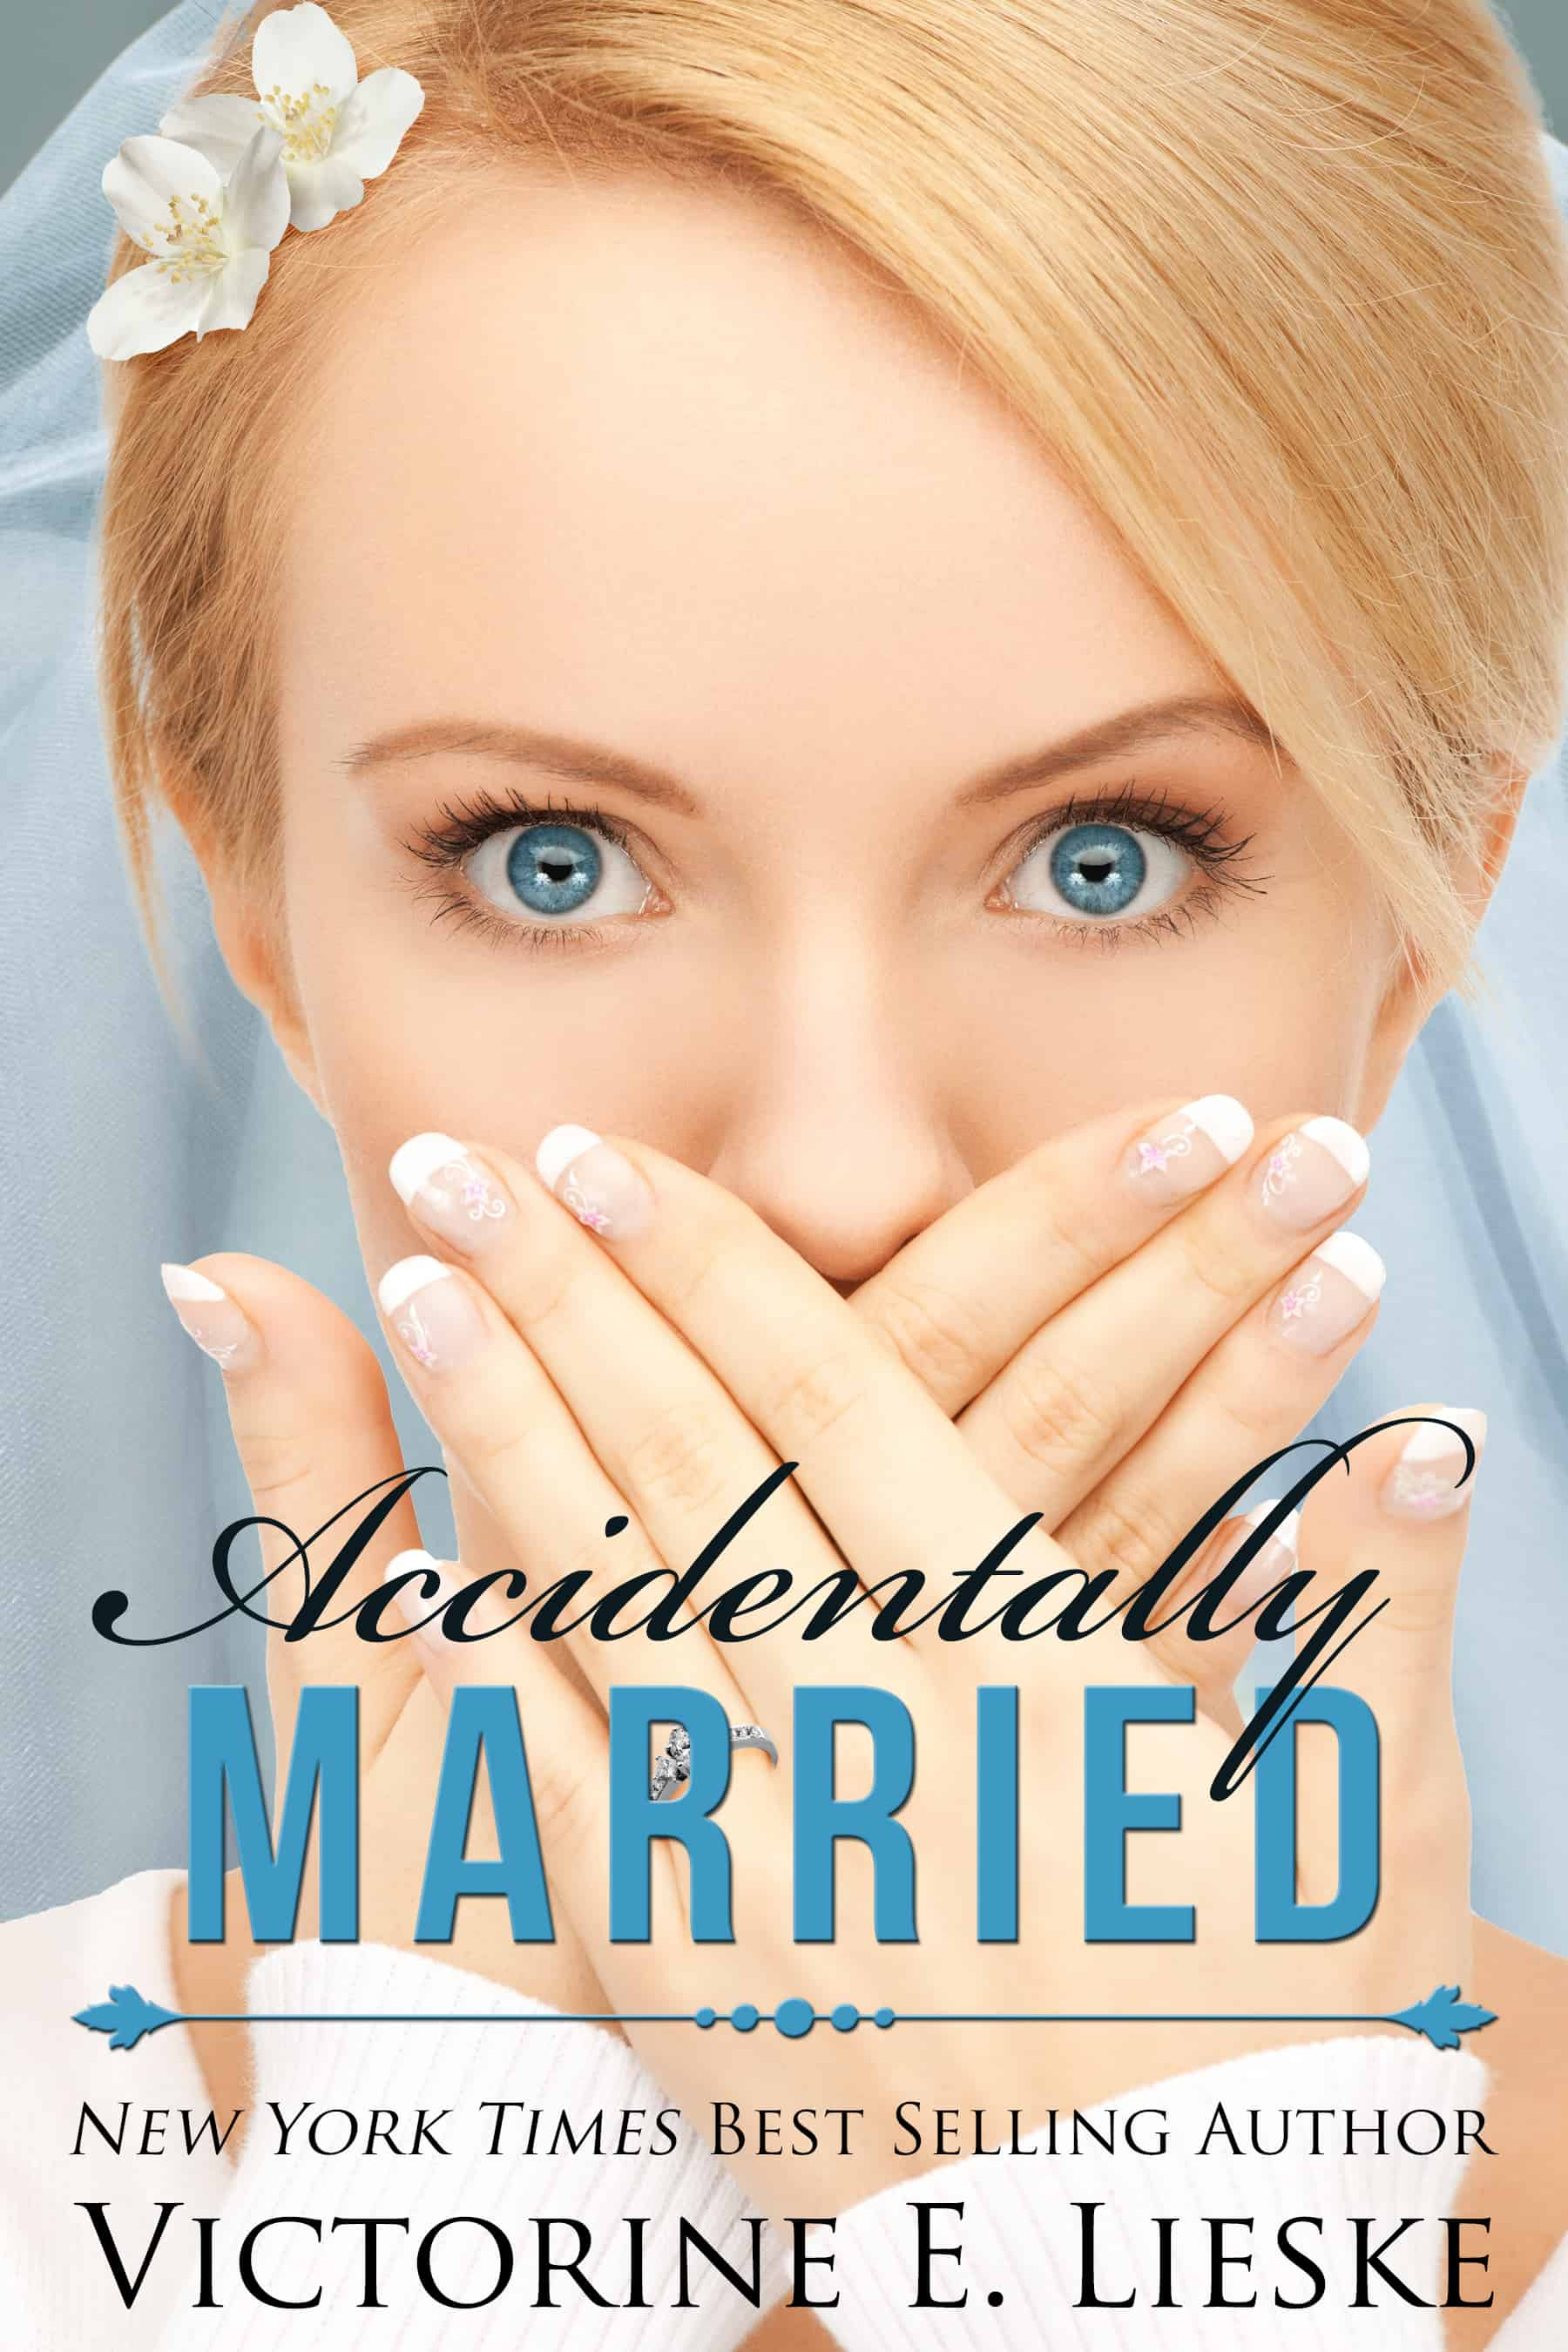 Cover for Accidentally Married